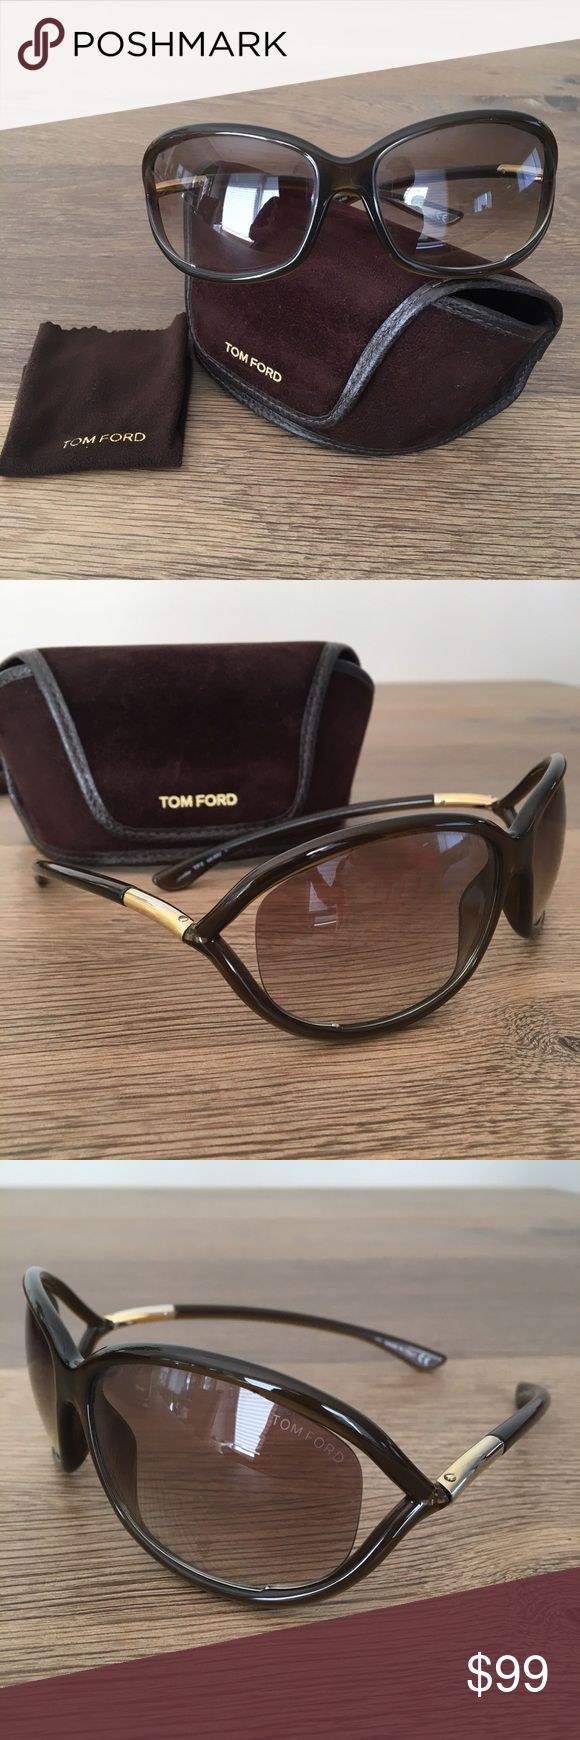 Tom Ford Jennifer Sunglasses Brown frame and shaded lenses. Good used condition. Has some minor scuffs on one of the lenses but nothing major. Includes original case and cleaning cloth. Tom Ford Accessories Sunglasses